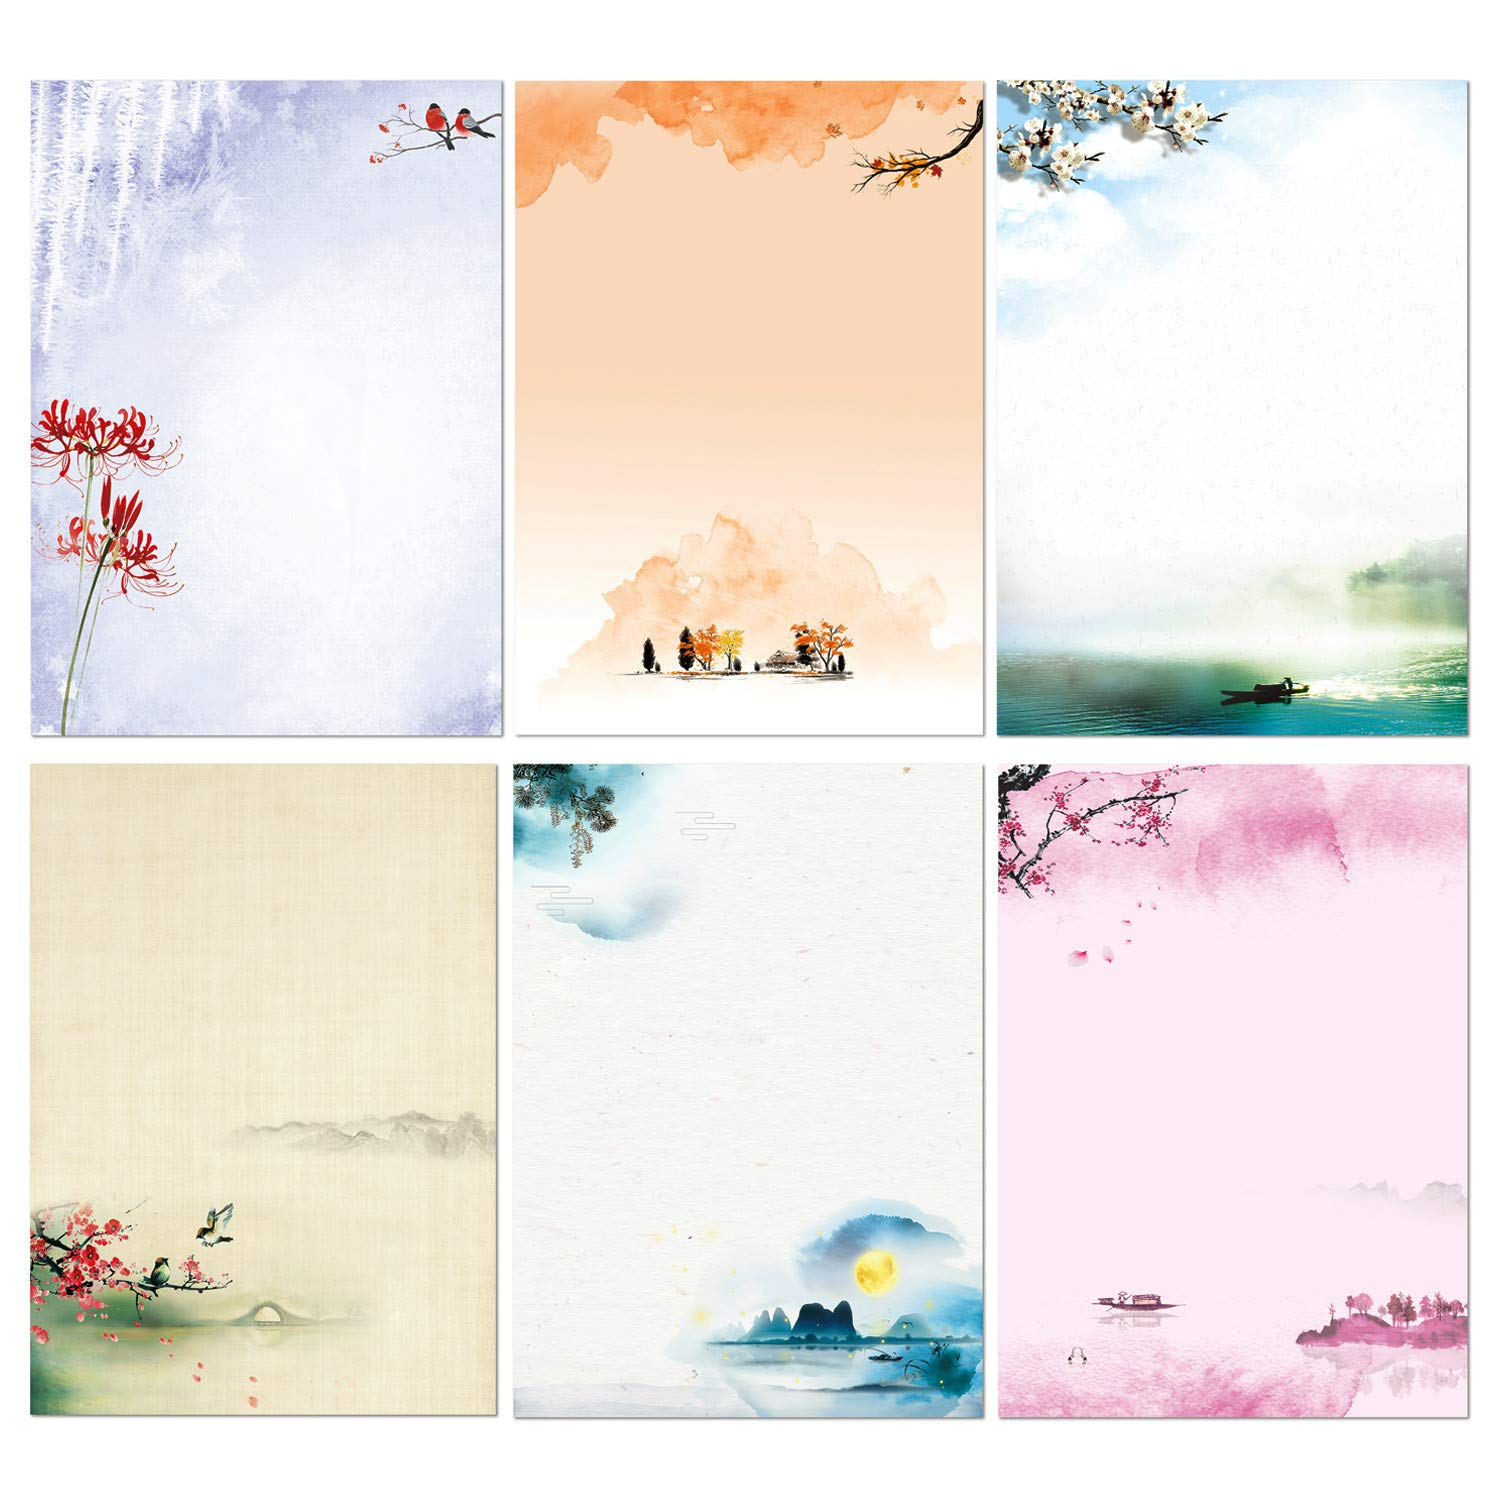 Stationary Set Japanese Stationery Letter Writing Paper, 48 Pack Stationary paper and envelopes set Ink Painting Design - 48 Stationary papers + 24 Envelopes by KiDEPOCH